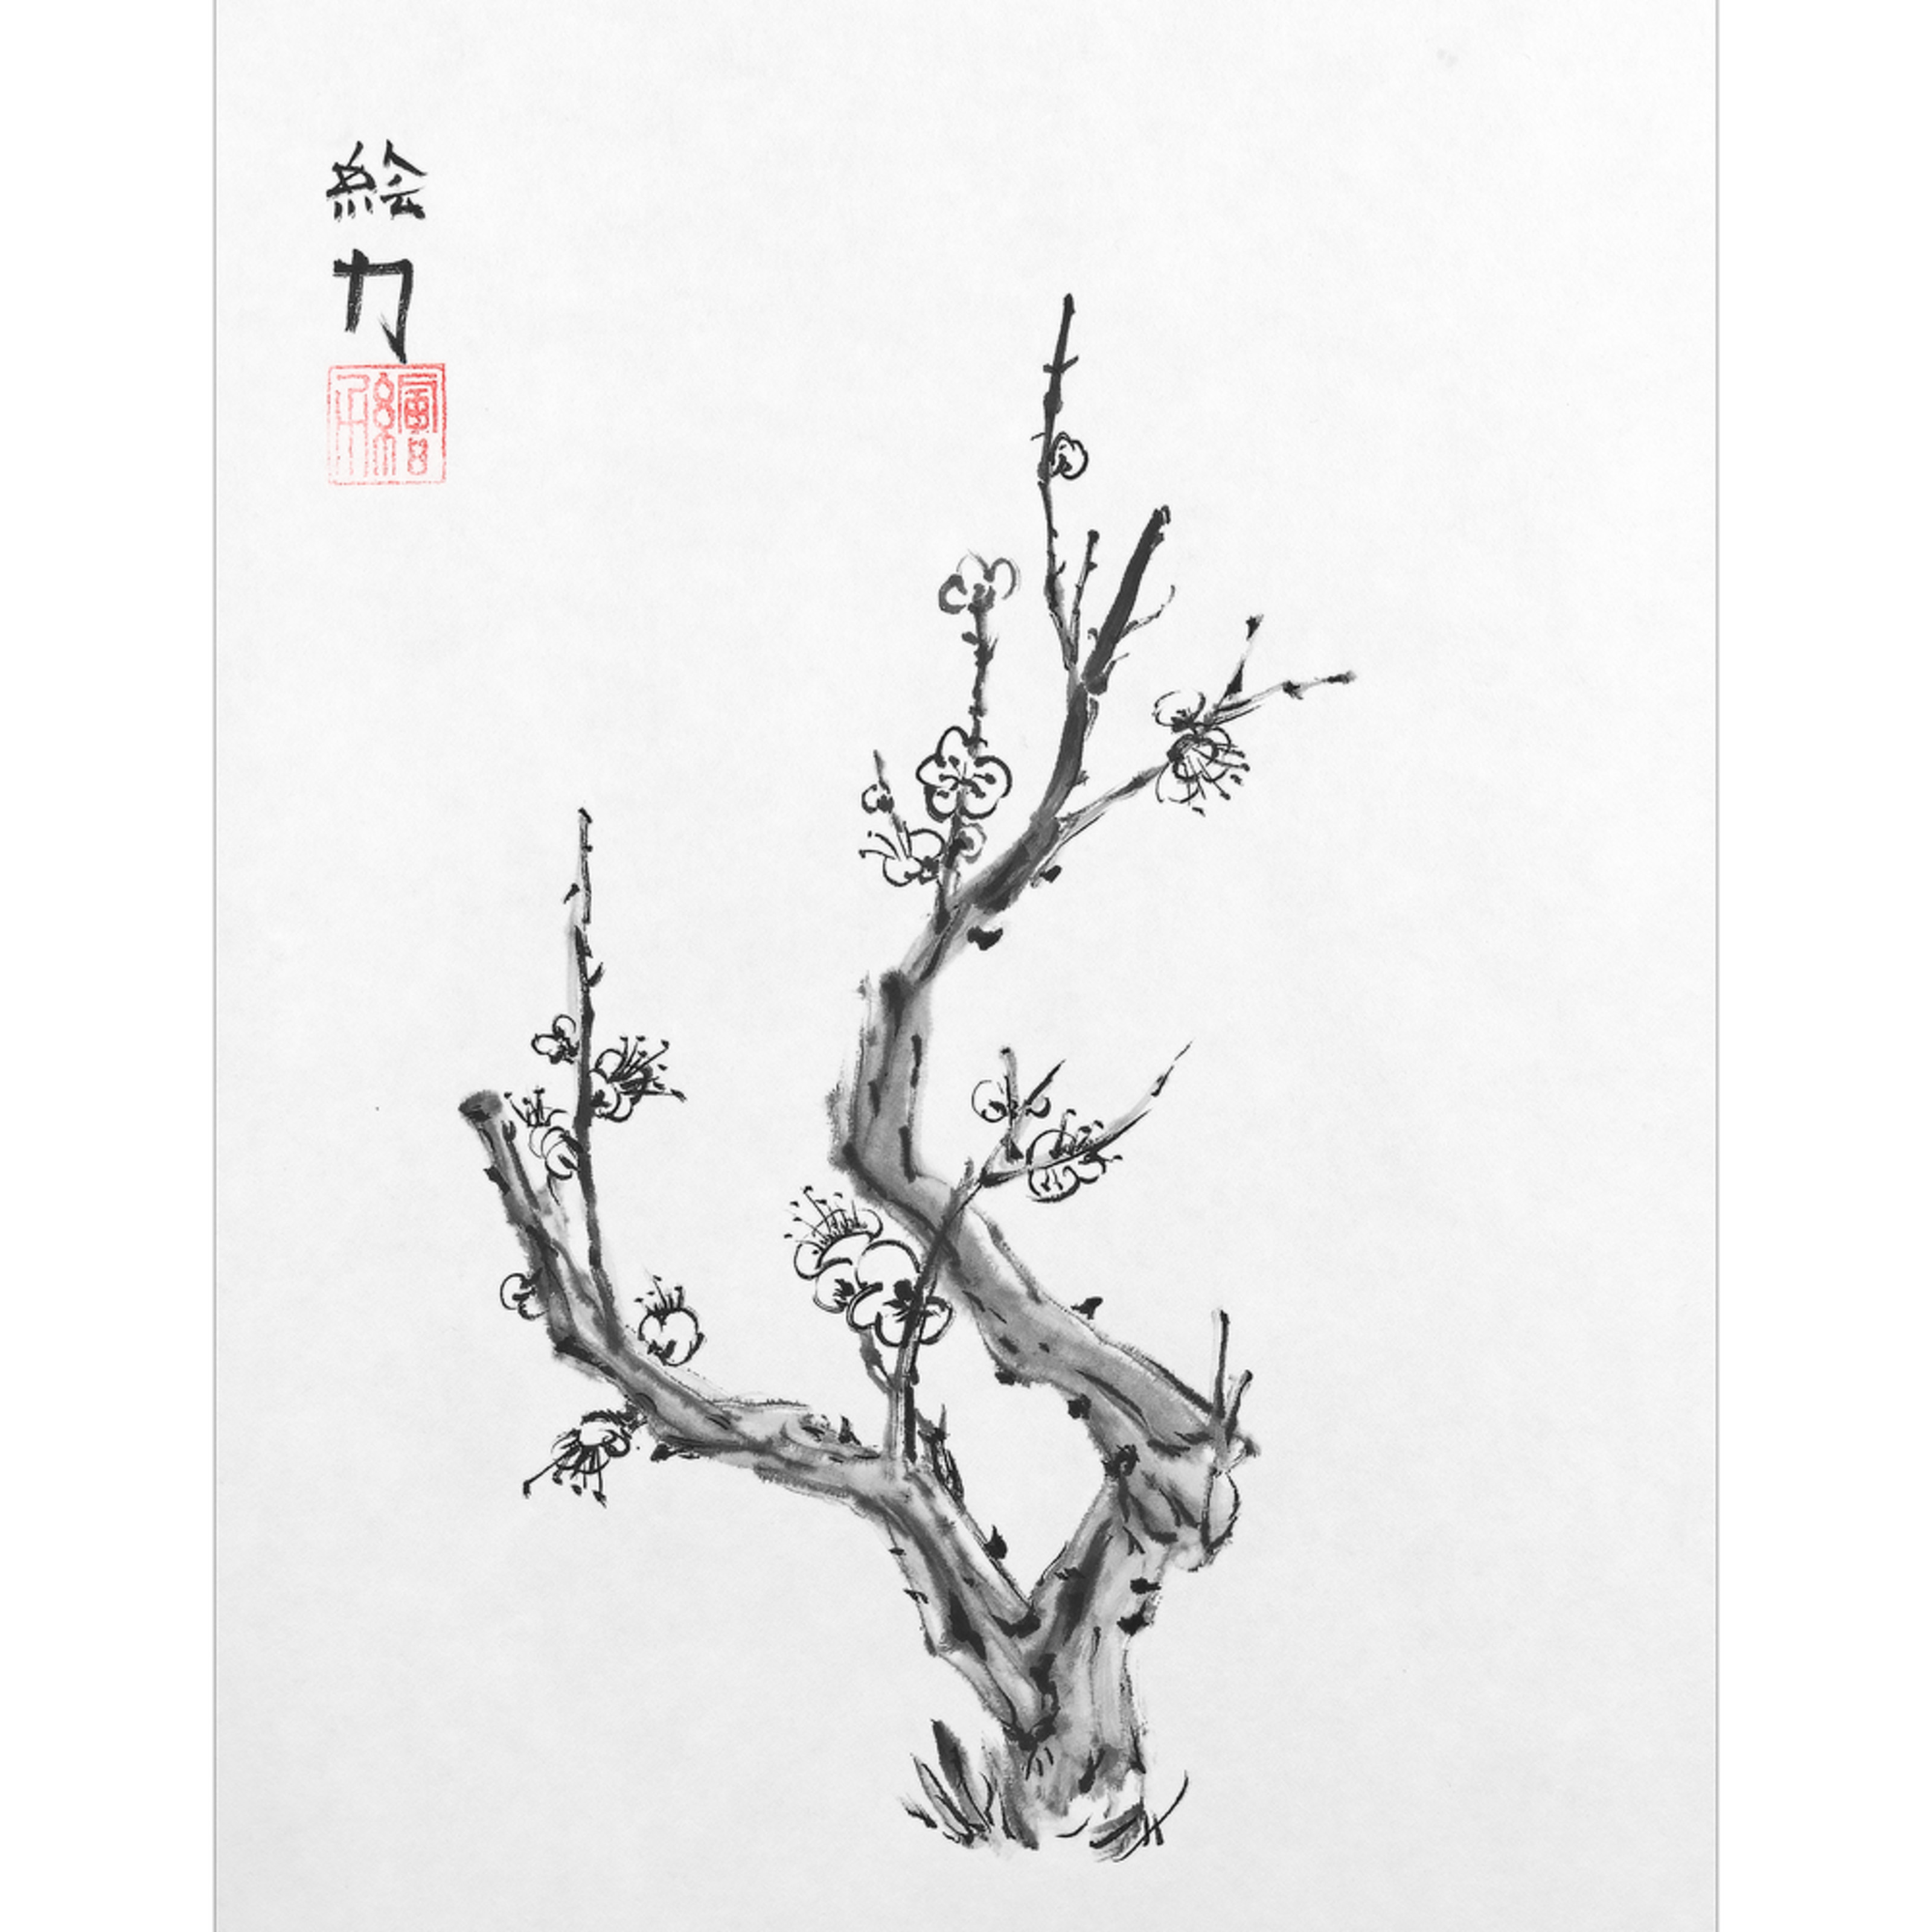 Hombretheartist sumie plumblossom 2 forprint111219 wafo9k